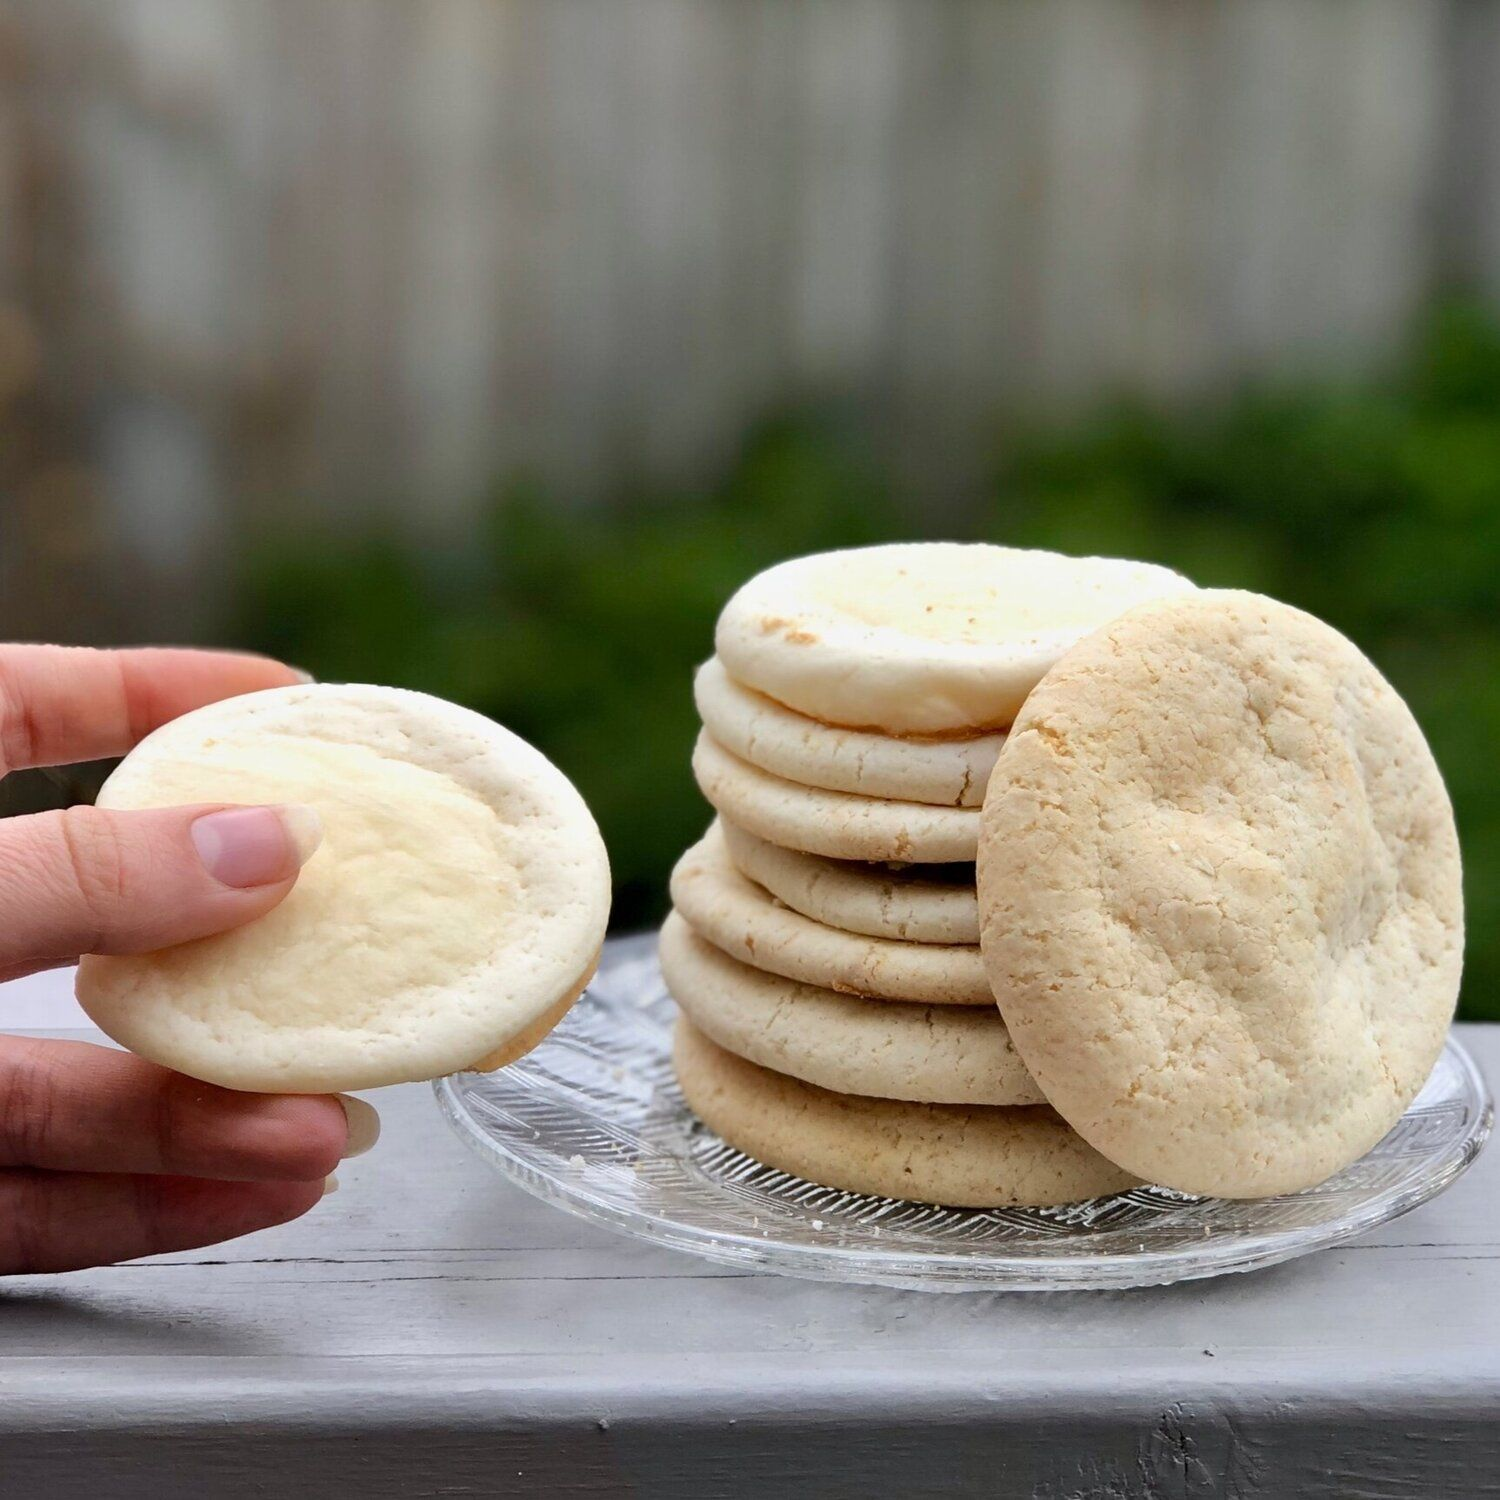 Pin By Kelly Dean On Gluten Free In 2020 Condensed Milk Cookies Almond Meal Cookies Condensed Milk Recipes